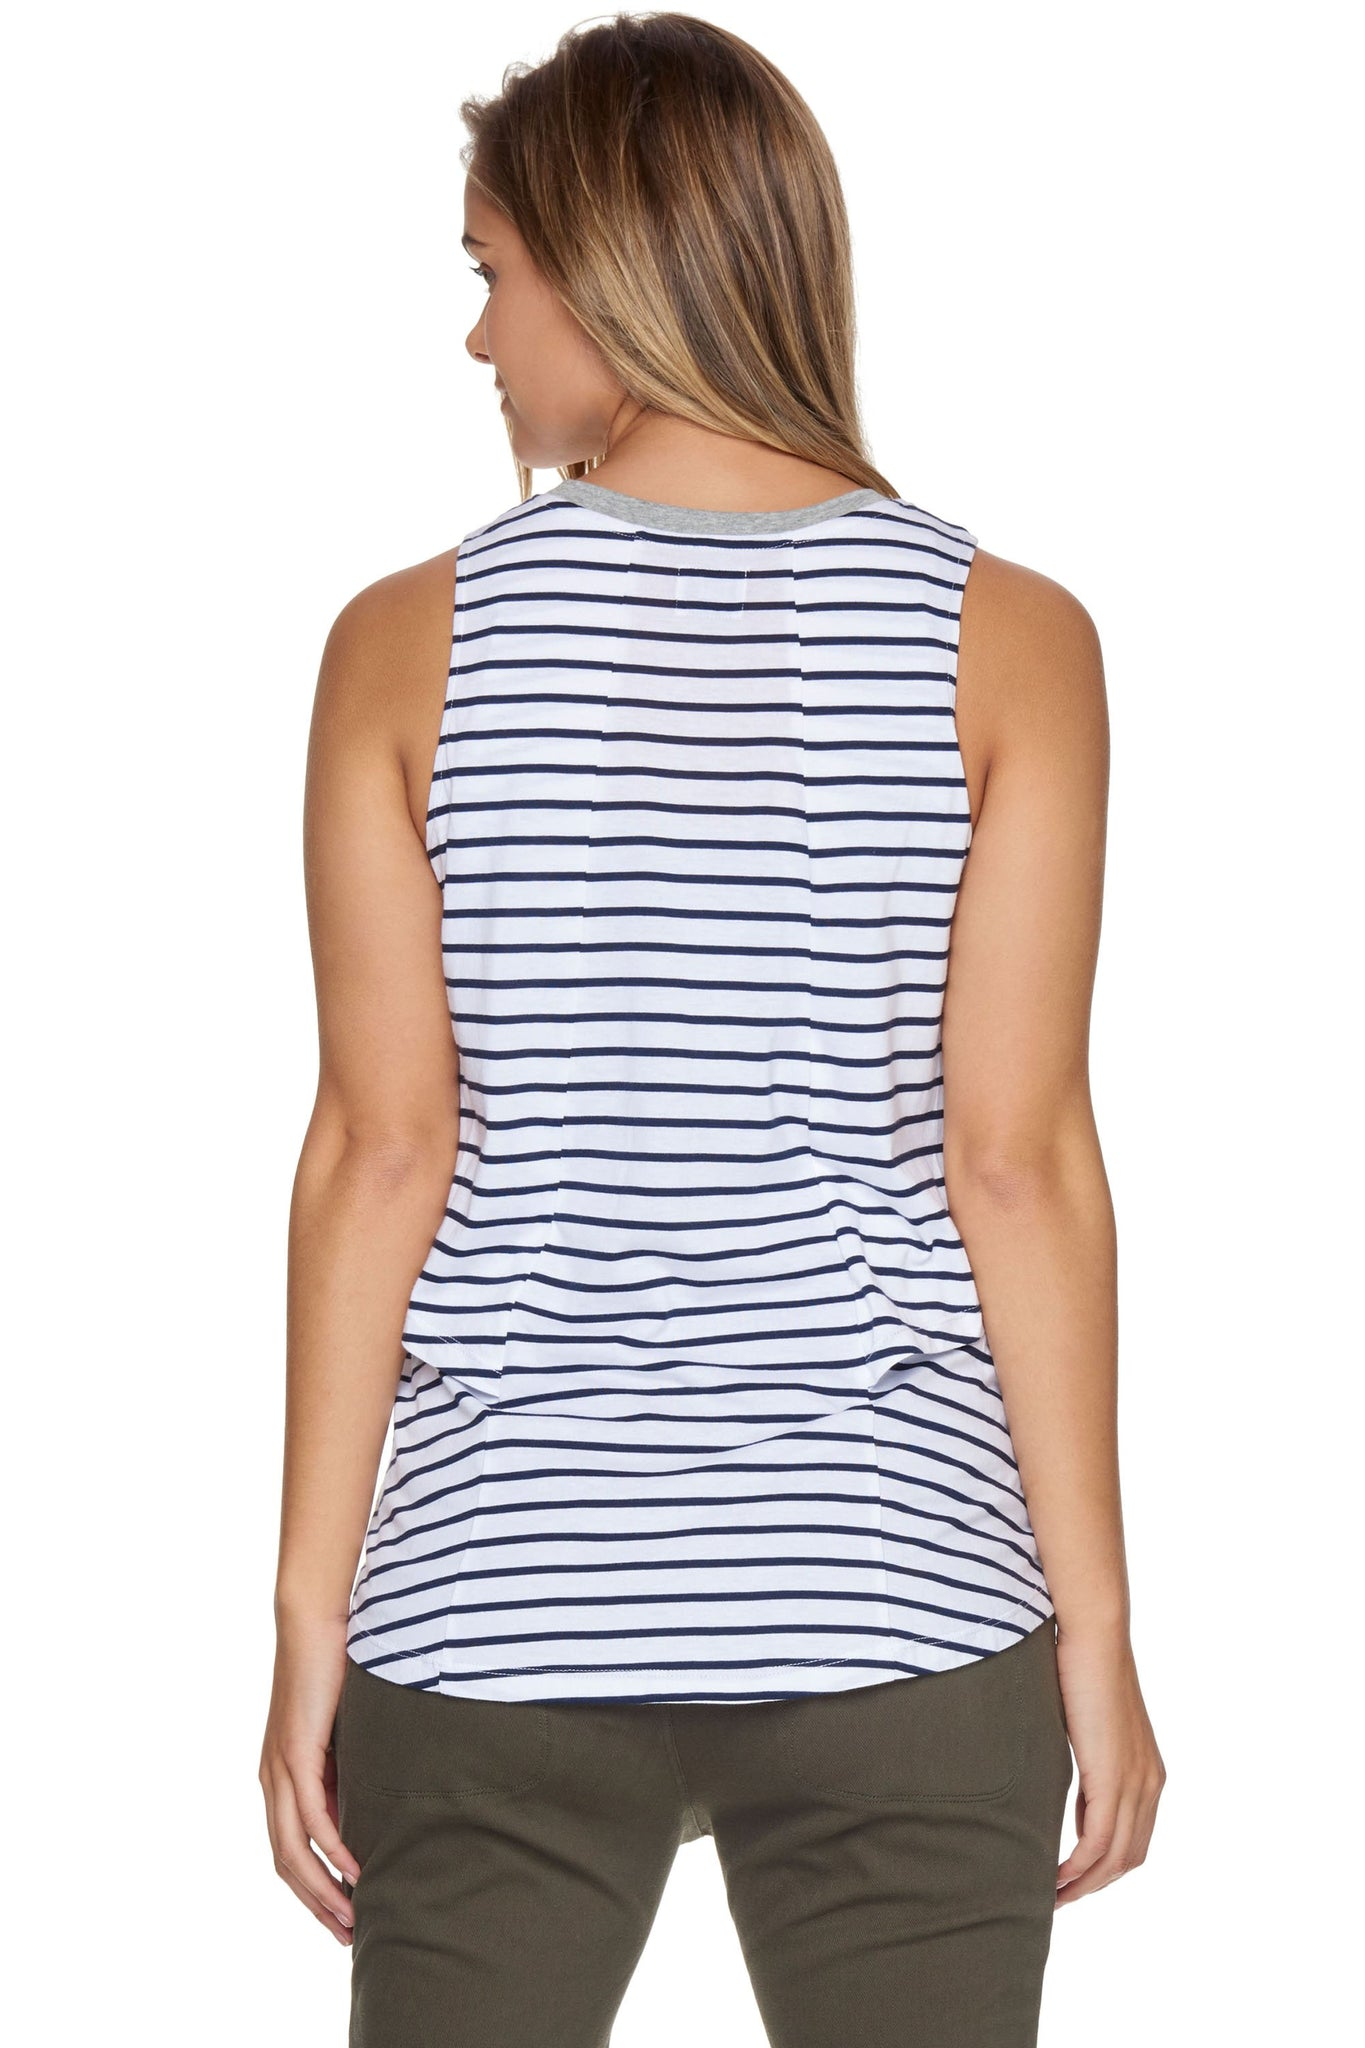 Nursing Top - Stripe 2